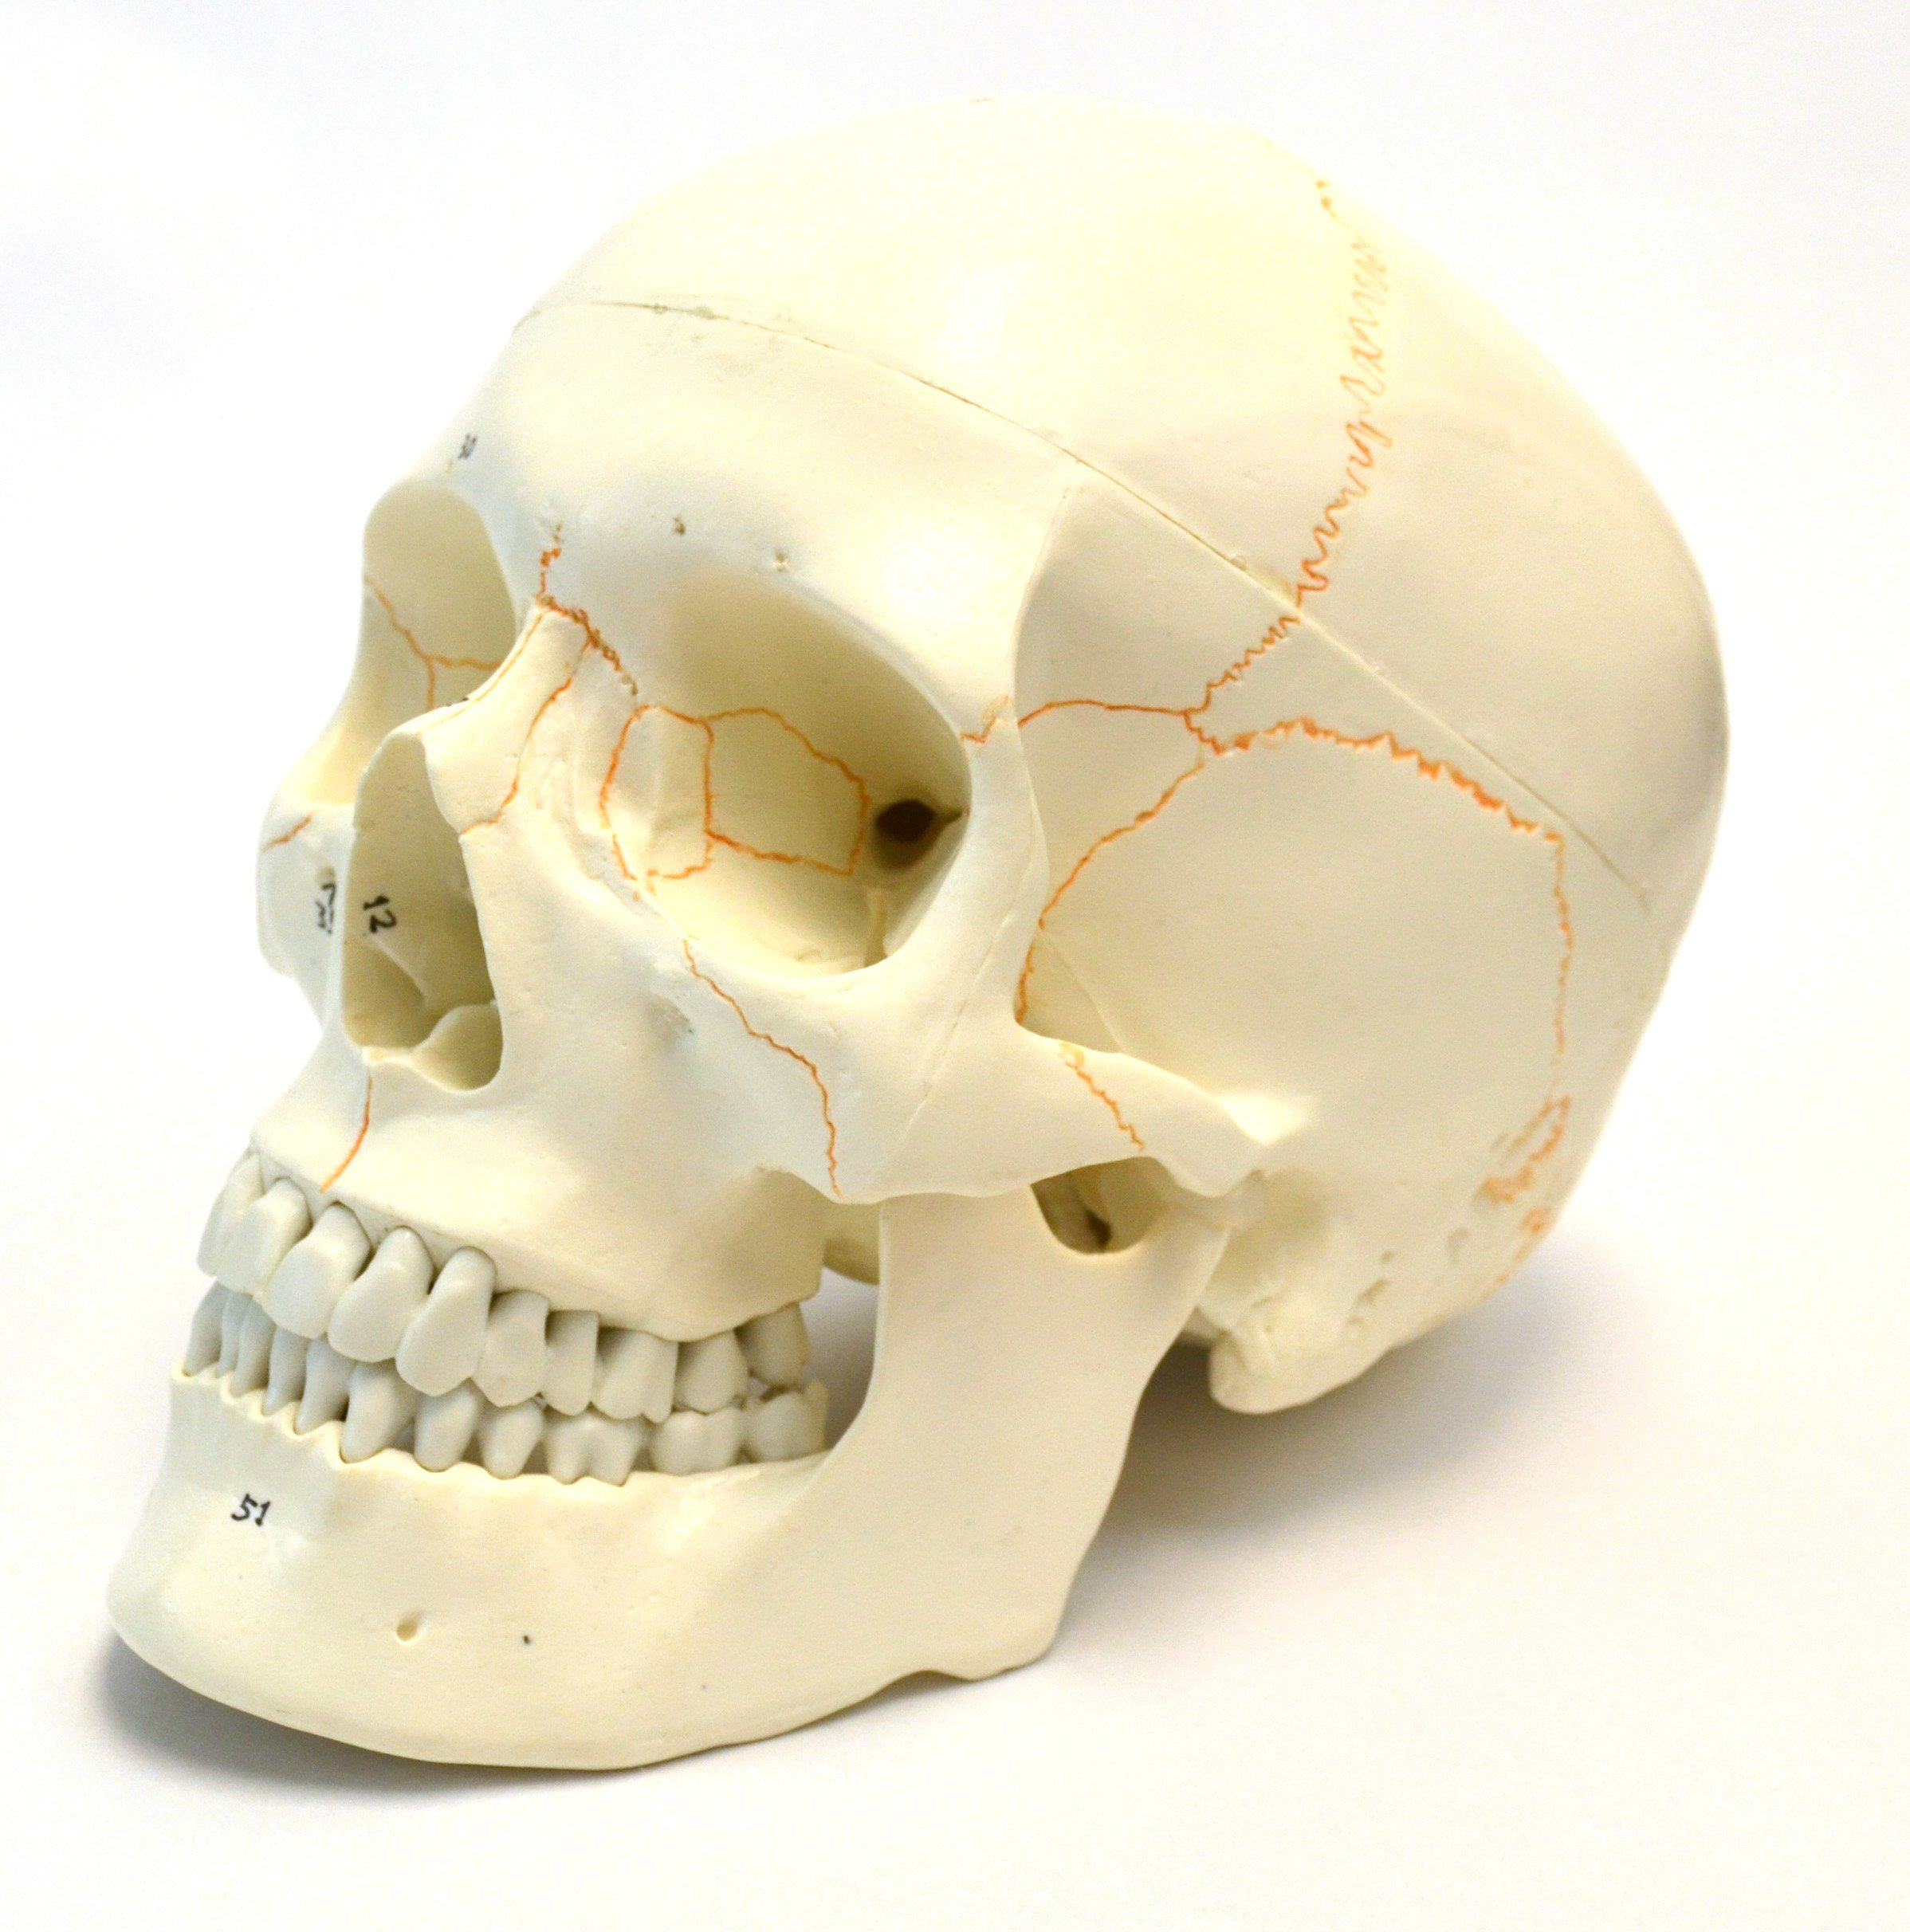 Numbered Human Adult Skull Anatomical Model, Medical Quality, Life Sized (9'' Height) - 3 Part - Removable Skull Cap - Shows Most Major Foramen, Fossa, and Canals - Includes Full Set of Teeth by hBARSCI (Image #2)